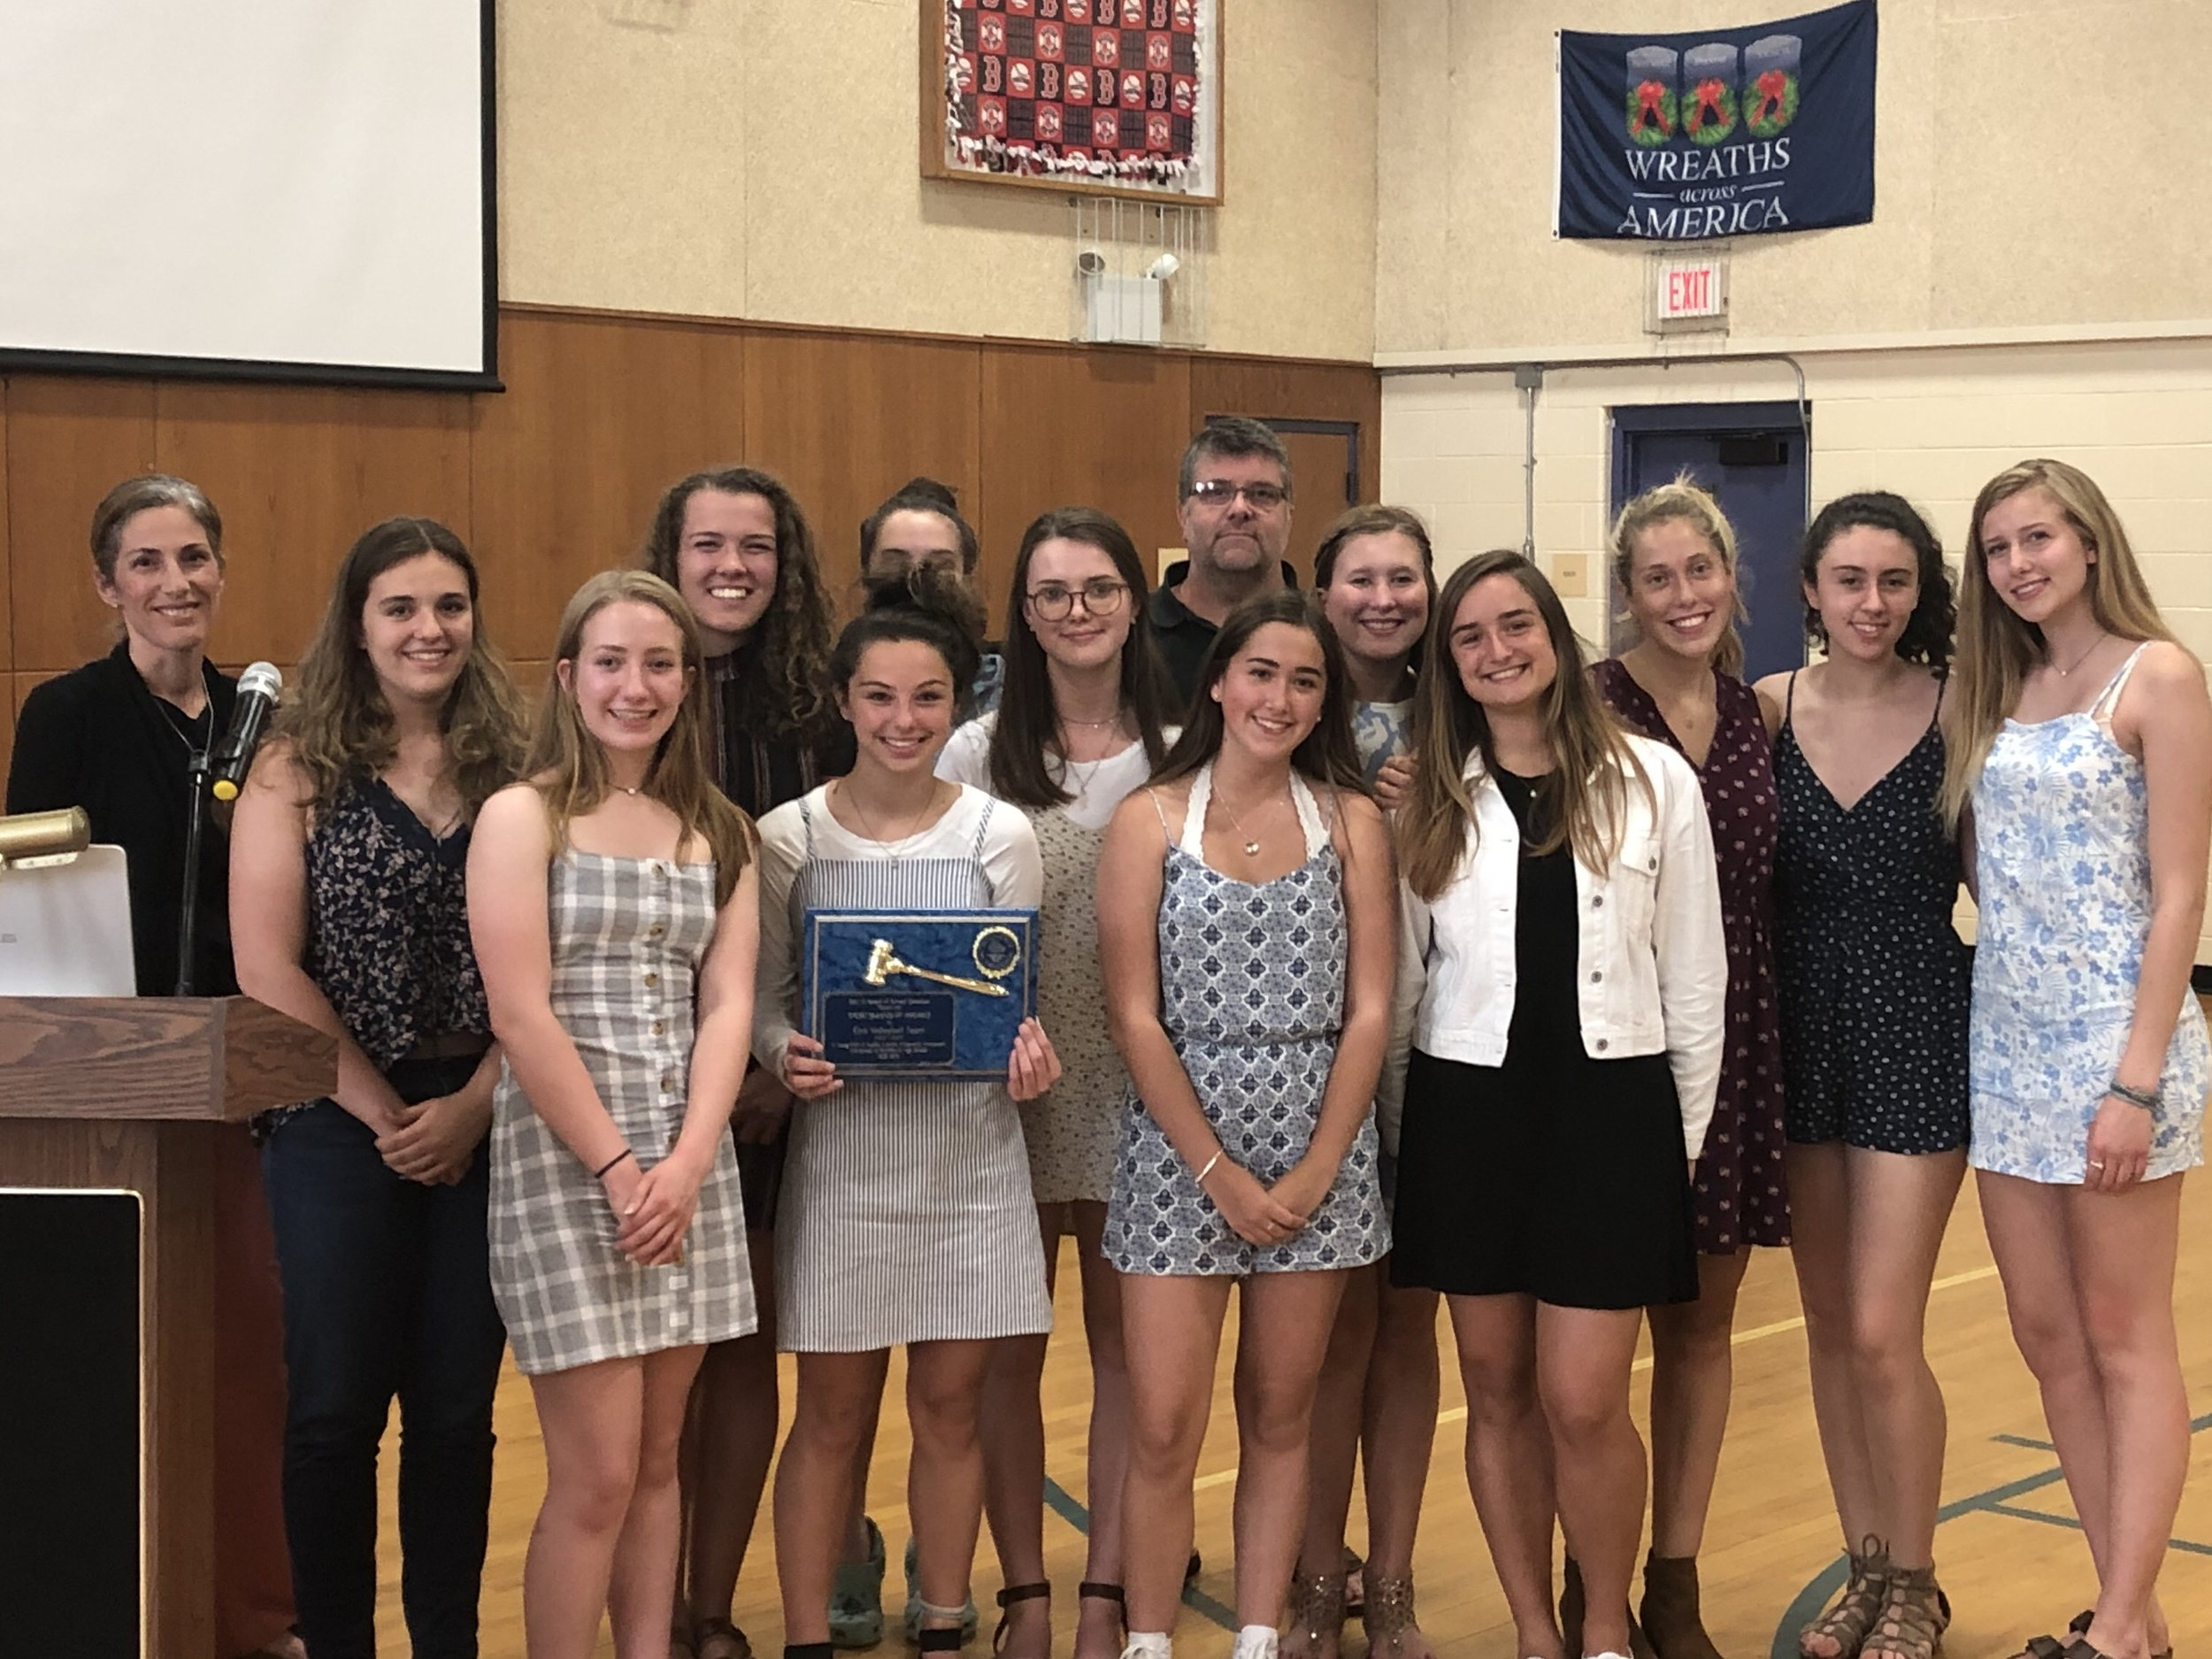 The Girls Volleyball Team received the Sportsmanship Award.